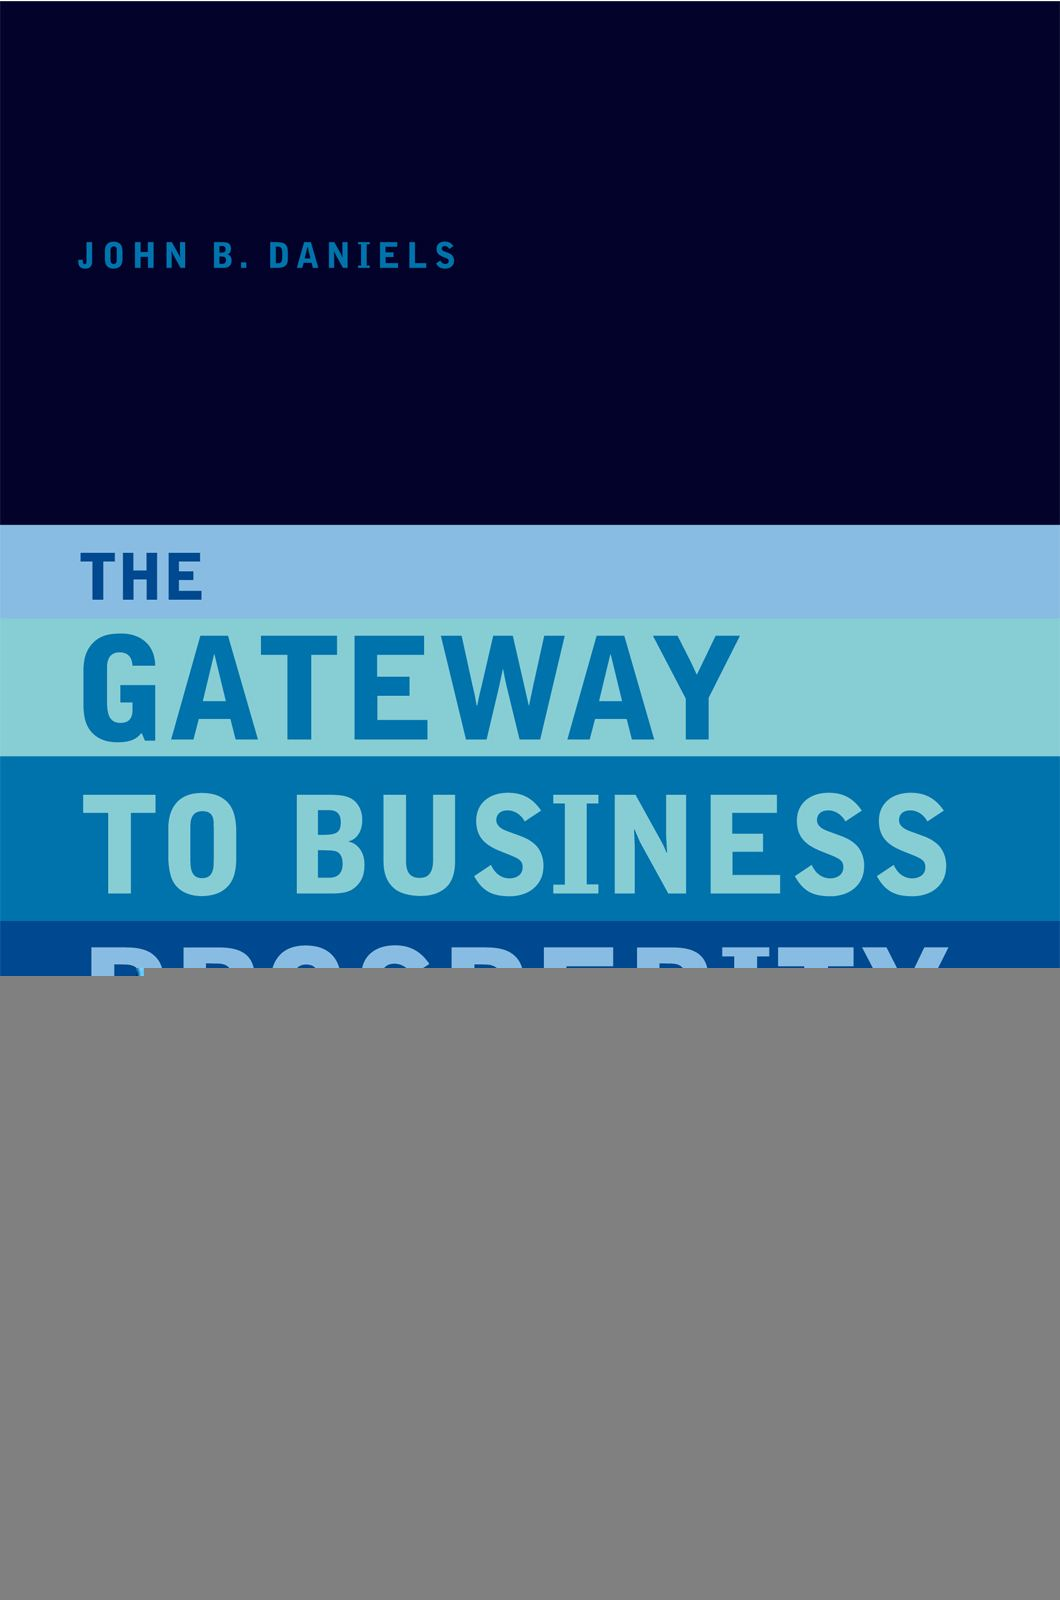 The Gateway to Business Prosperity